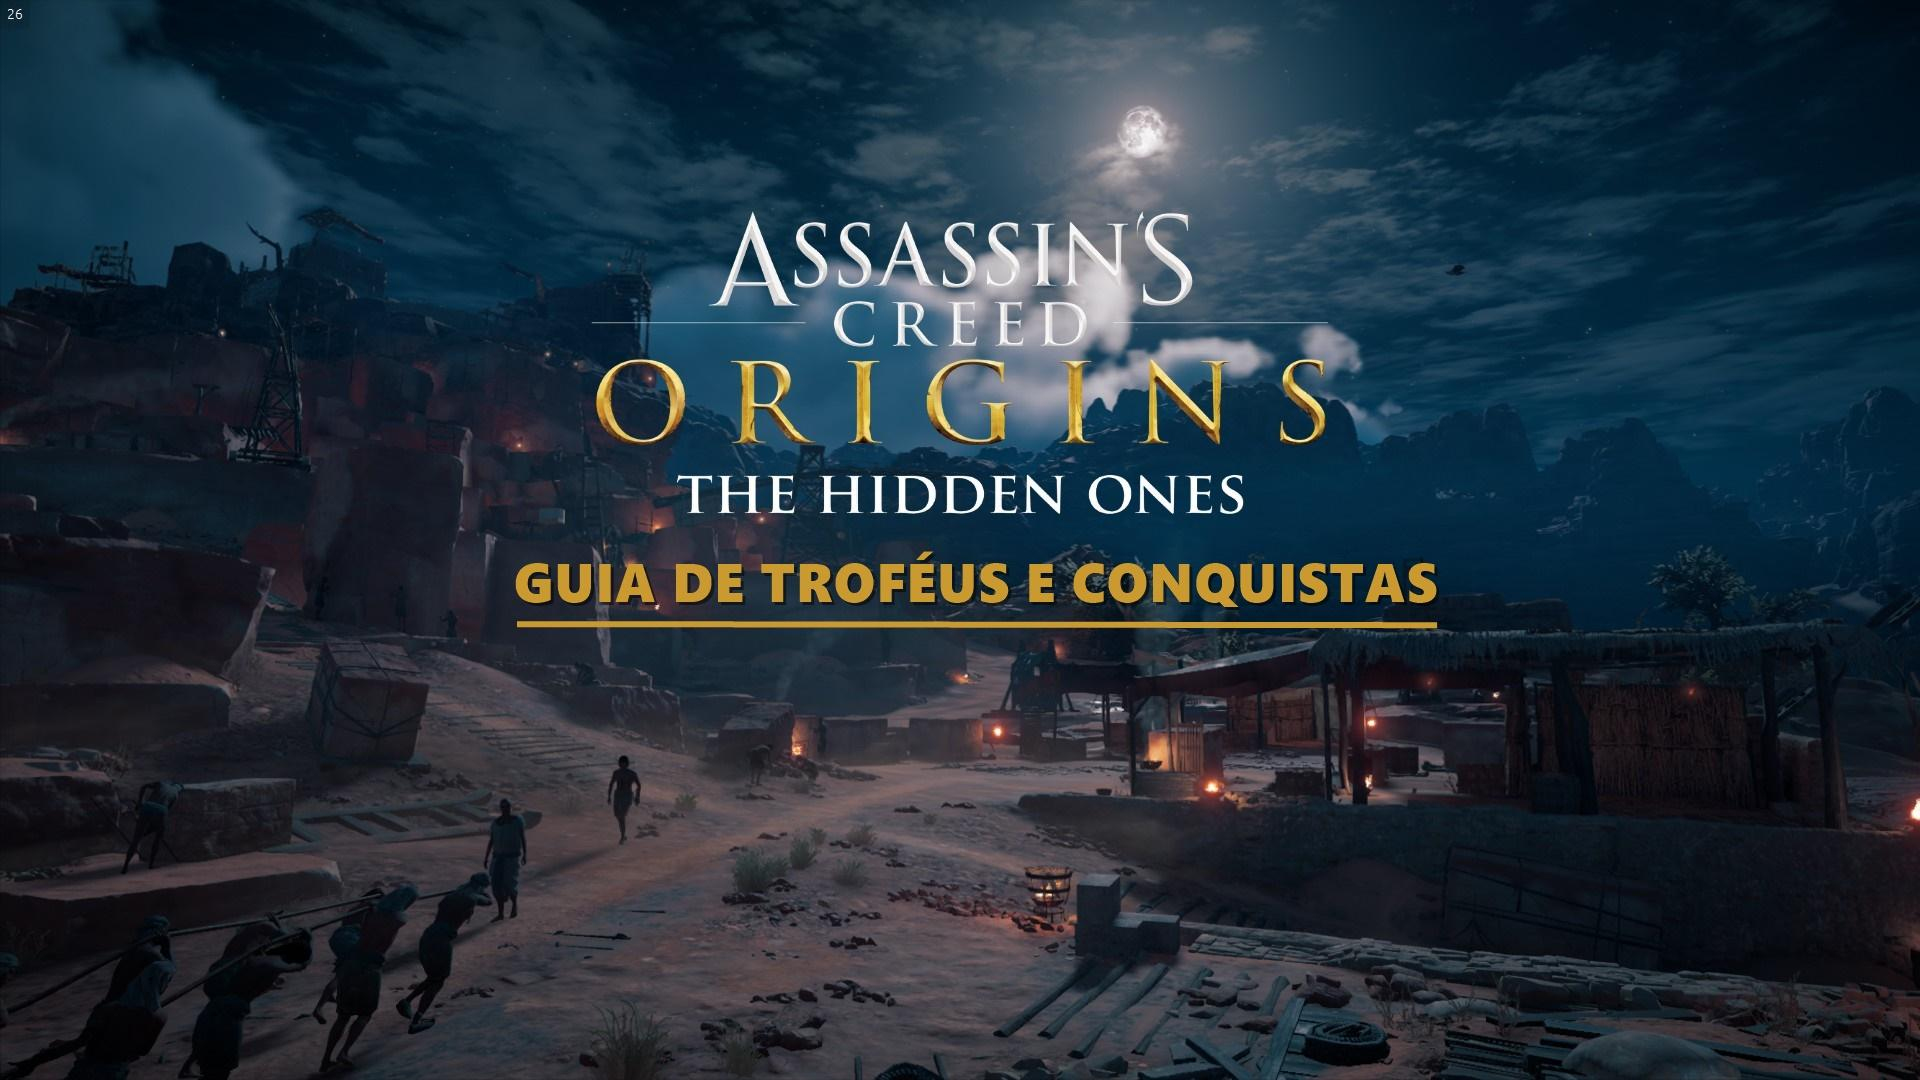 Guia de Troféus e Conquistas - Assassin's Creed Origins - The Hidden Ones